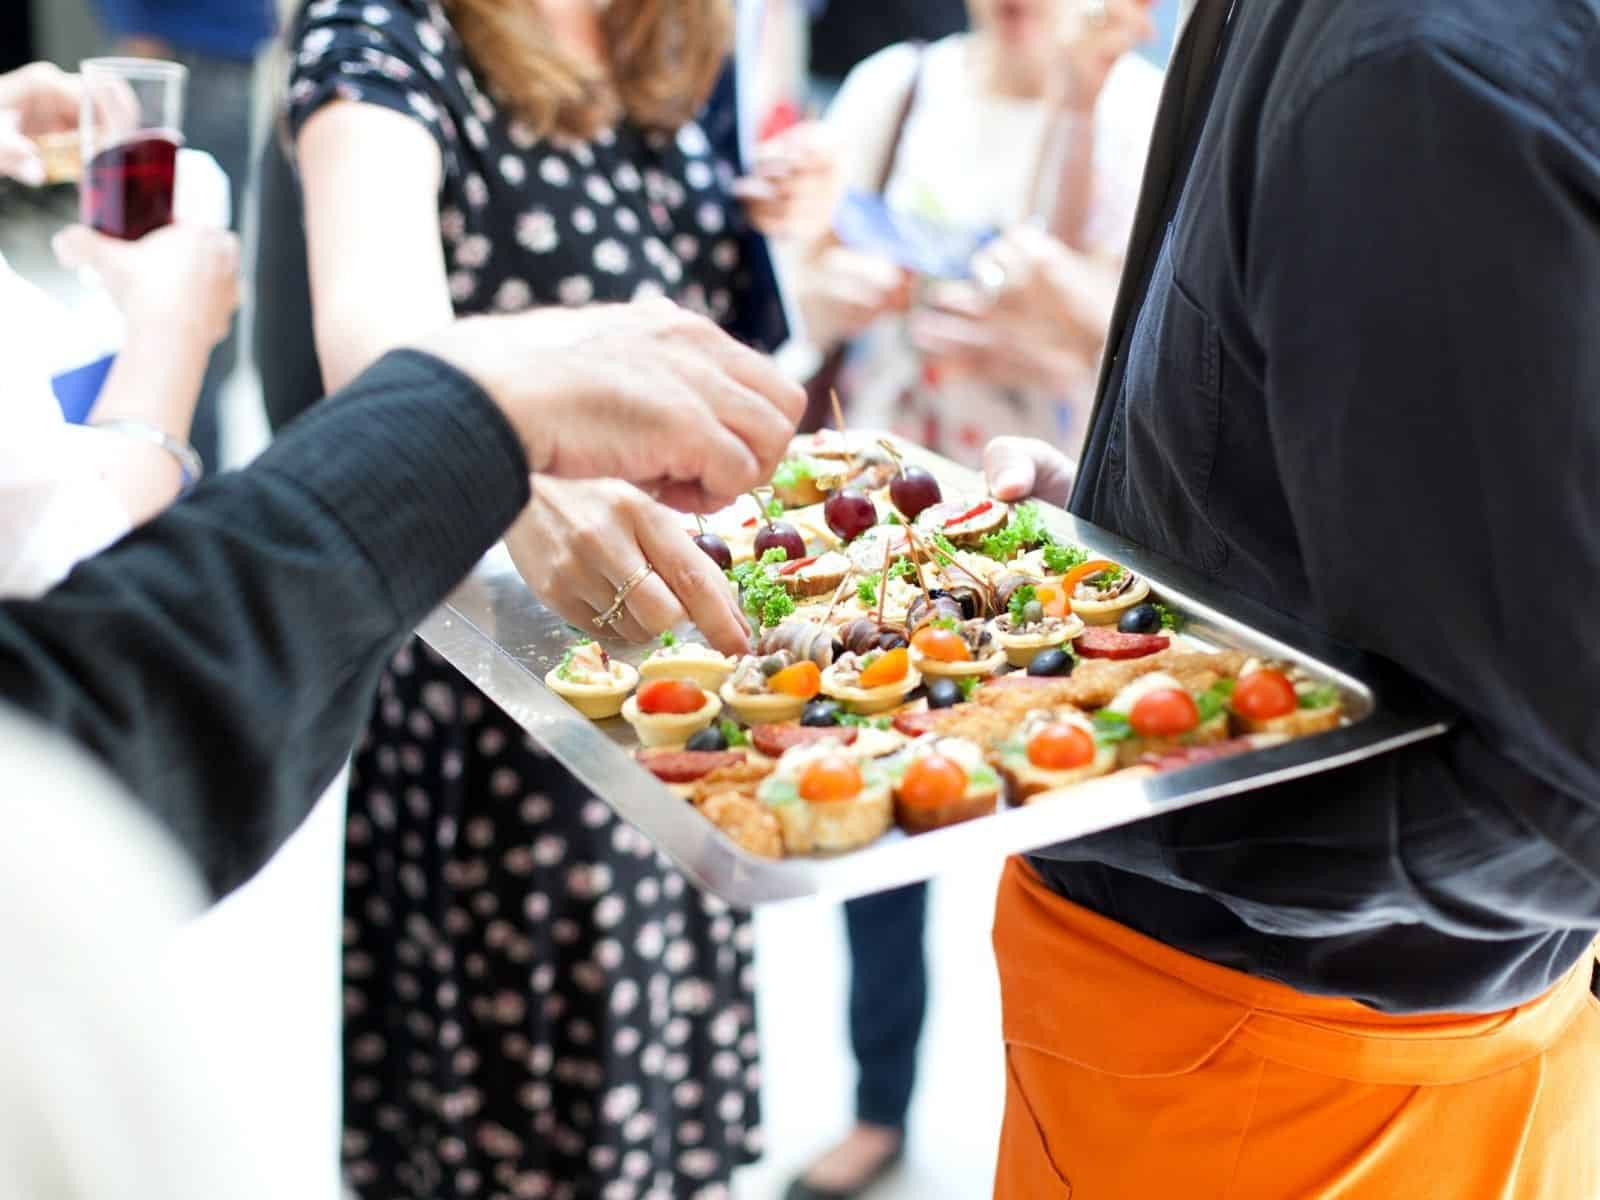 a caterer serving hors d'oeuvres at an event.